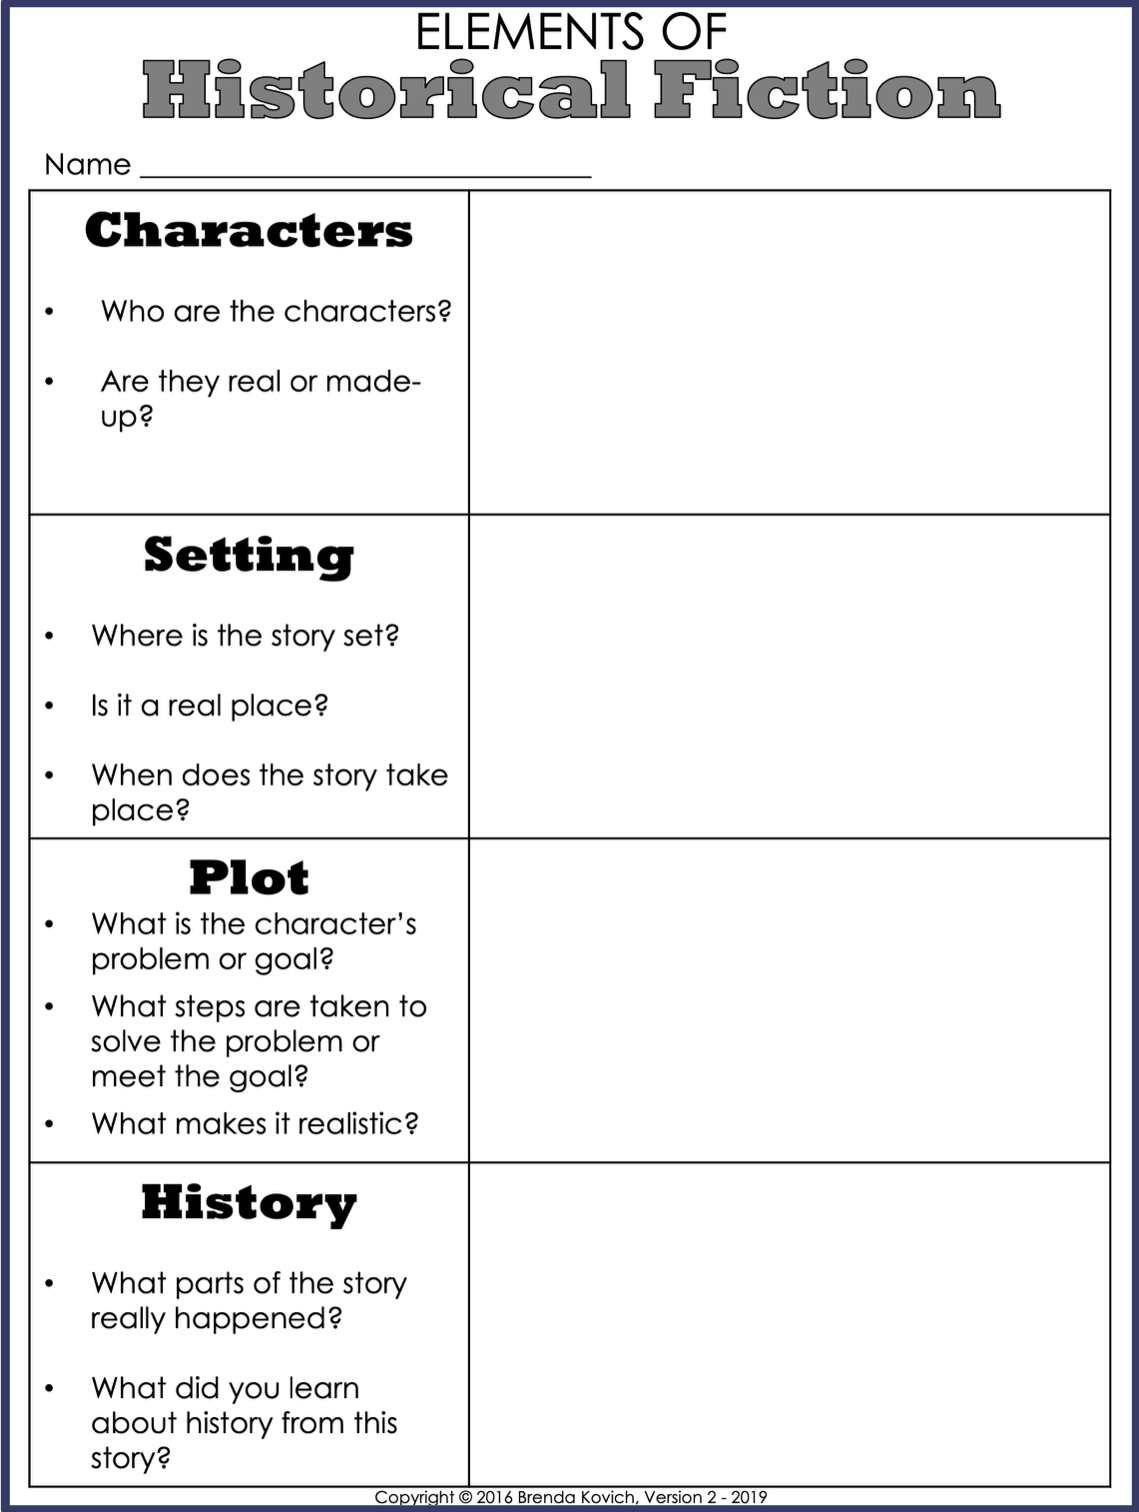 Teaching Historical Fiction With Reading Activities For